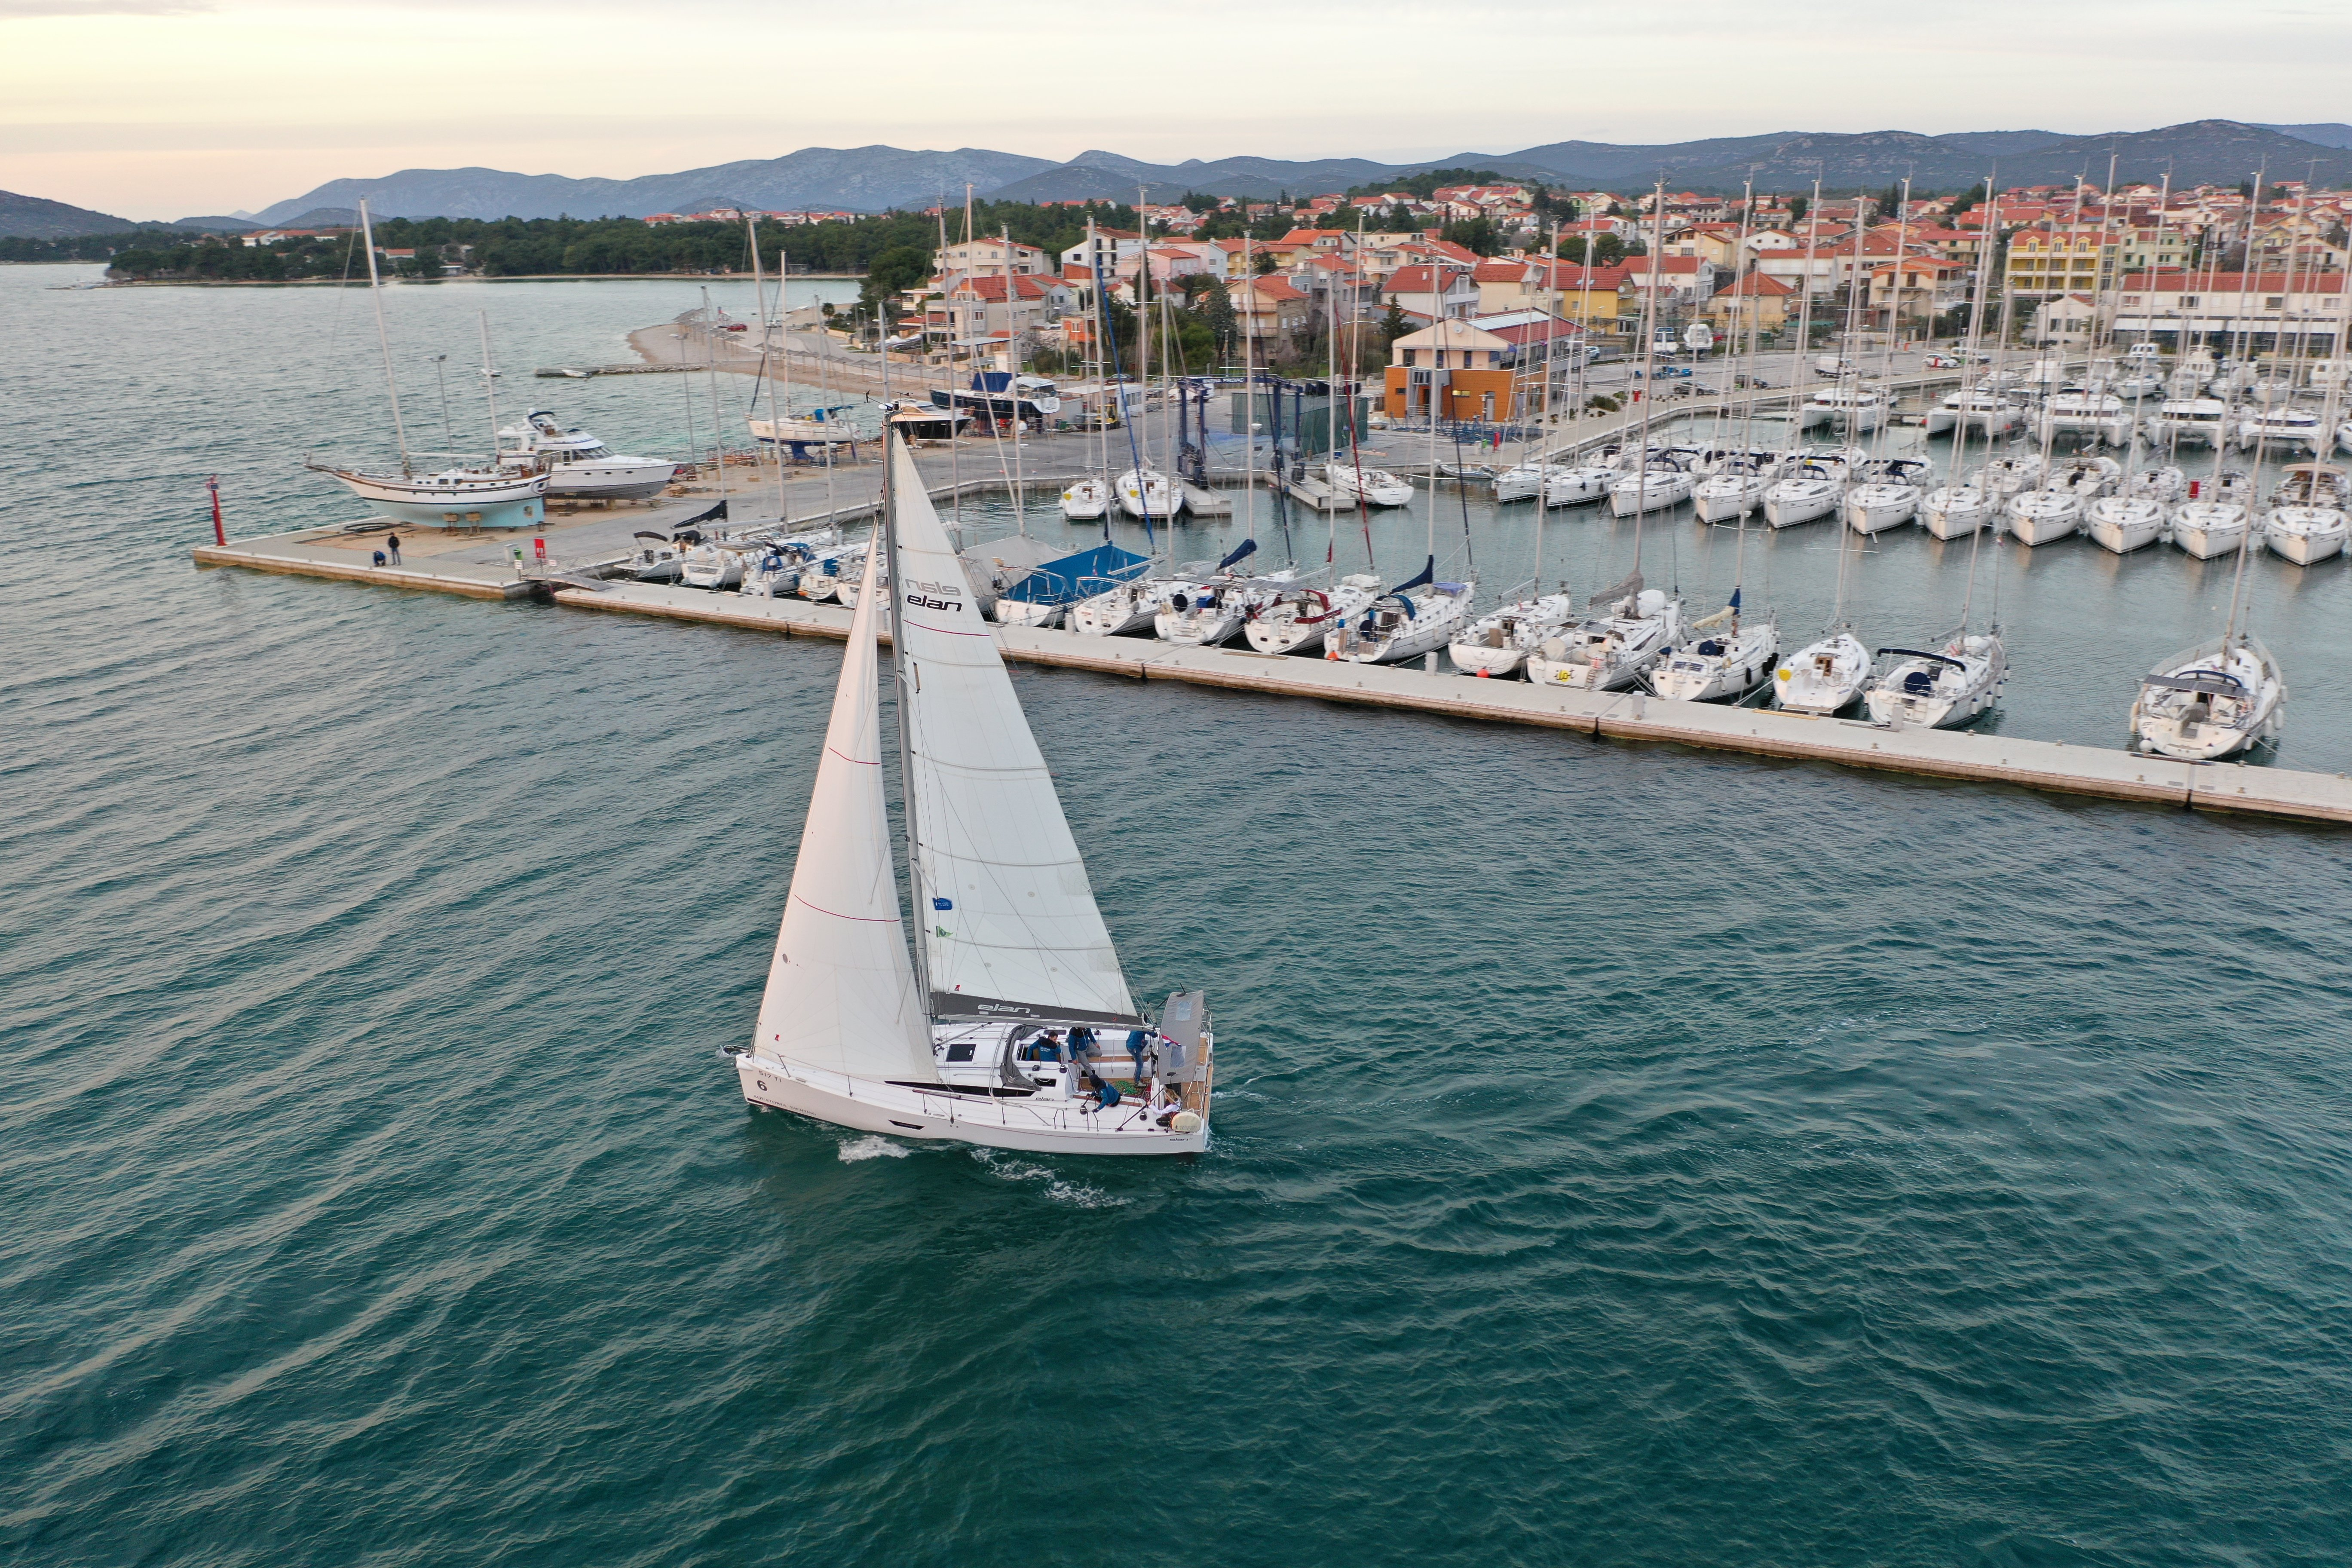 PREPARING RULES AND USE CHARTER YACHT FOR REGATTA & FLOTILLA